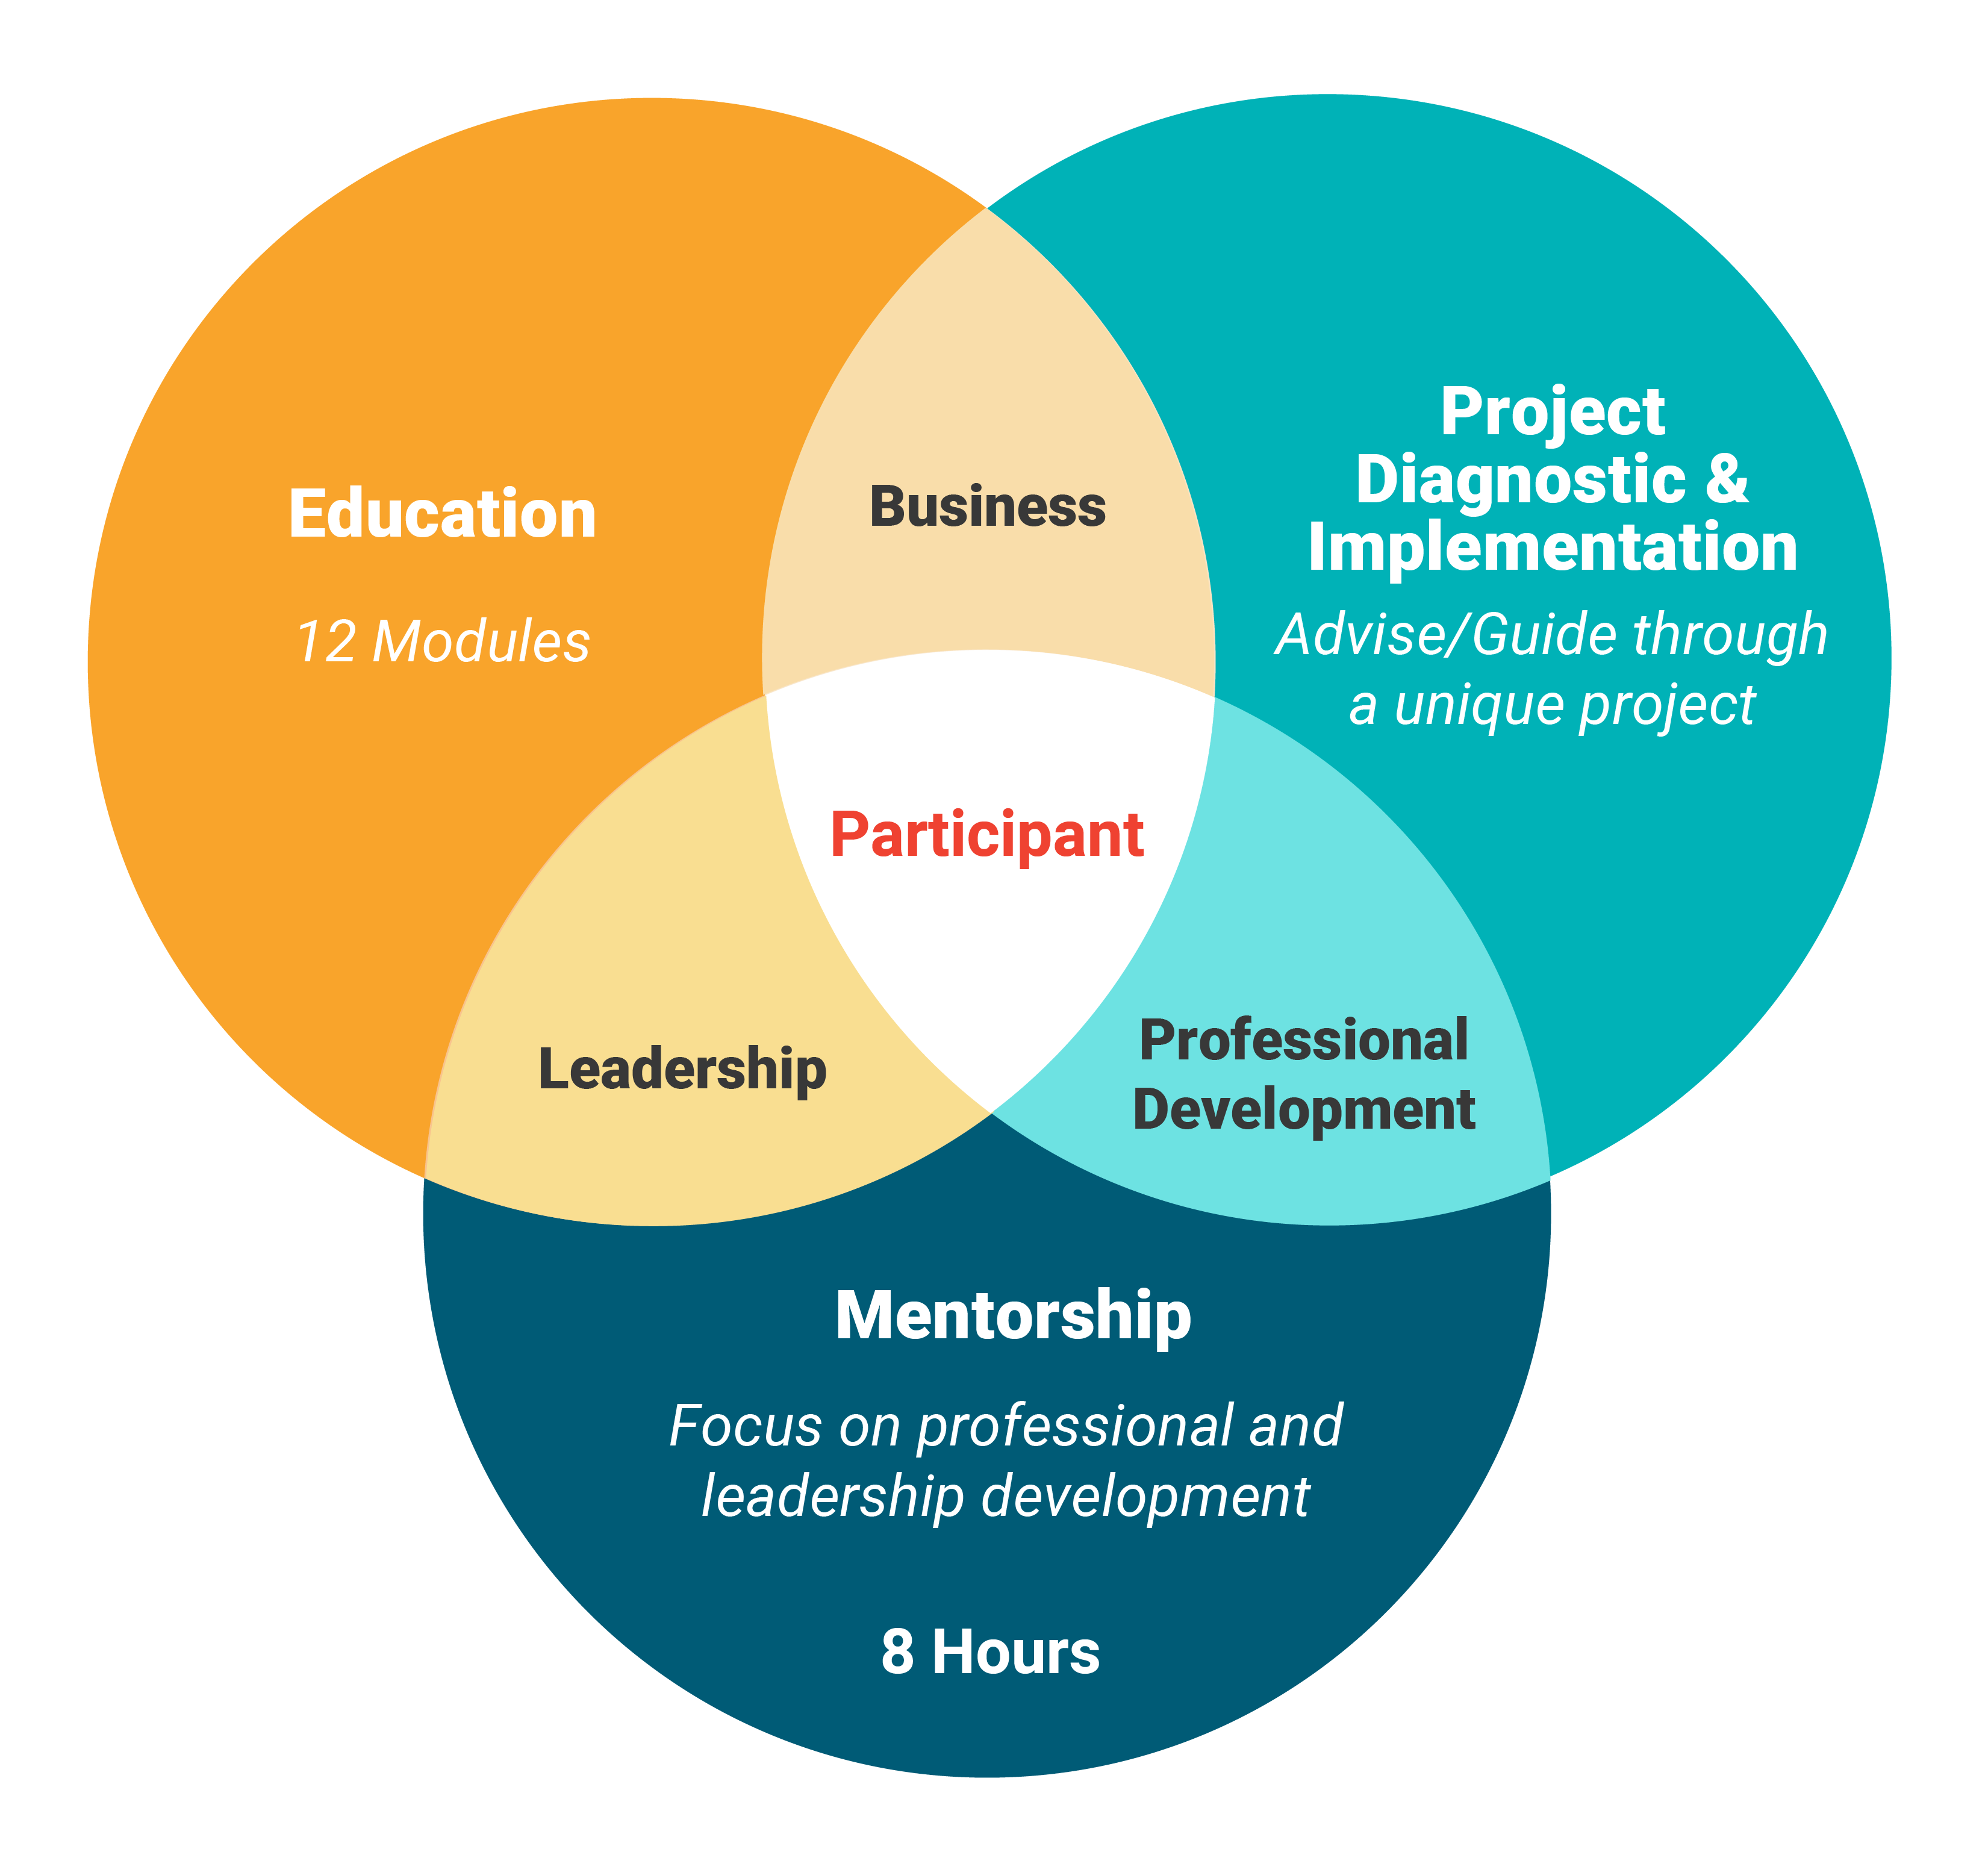 Core Components are: Education (12 modules), Project Diagnostic & Implementation (Adise/guide through unique project), Mentorship (Focus on non-technical skills to Focus on Professional and Leadership Development)